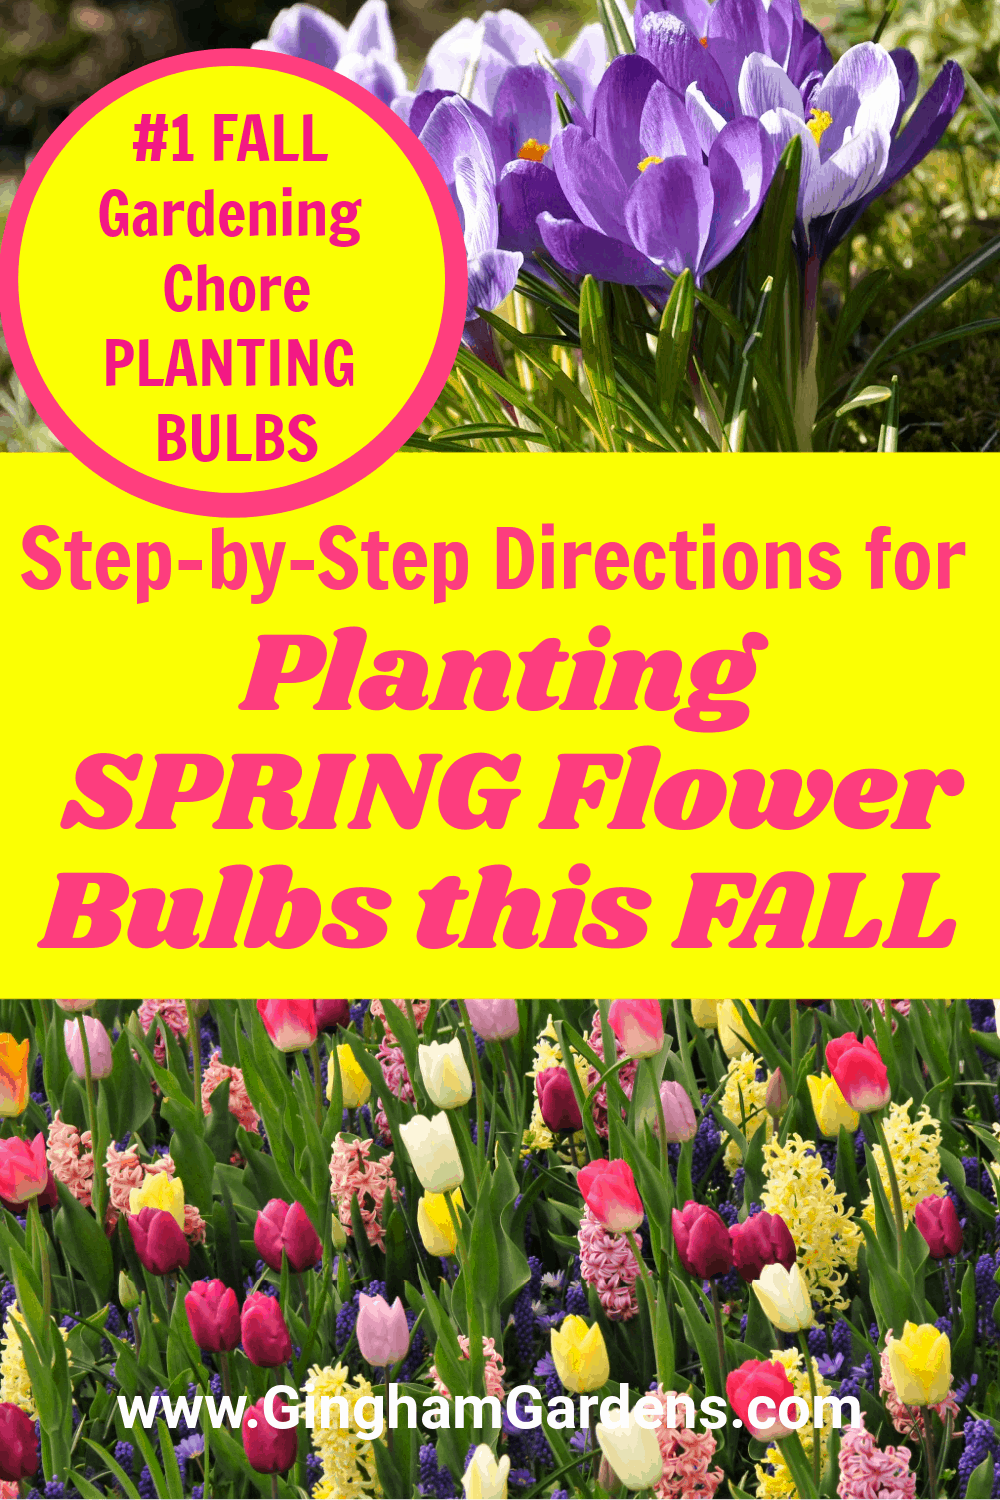 Images of spring flowers with text overlay Step-by-Step Directions for planting spring flowering bulbs this fall.